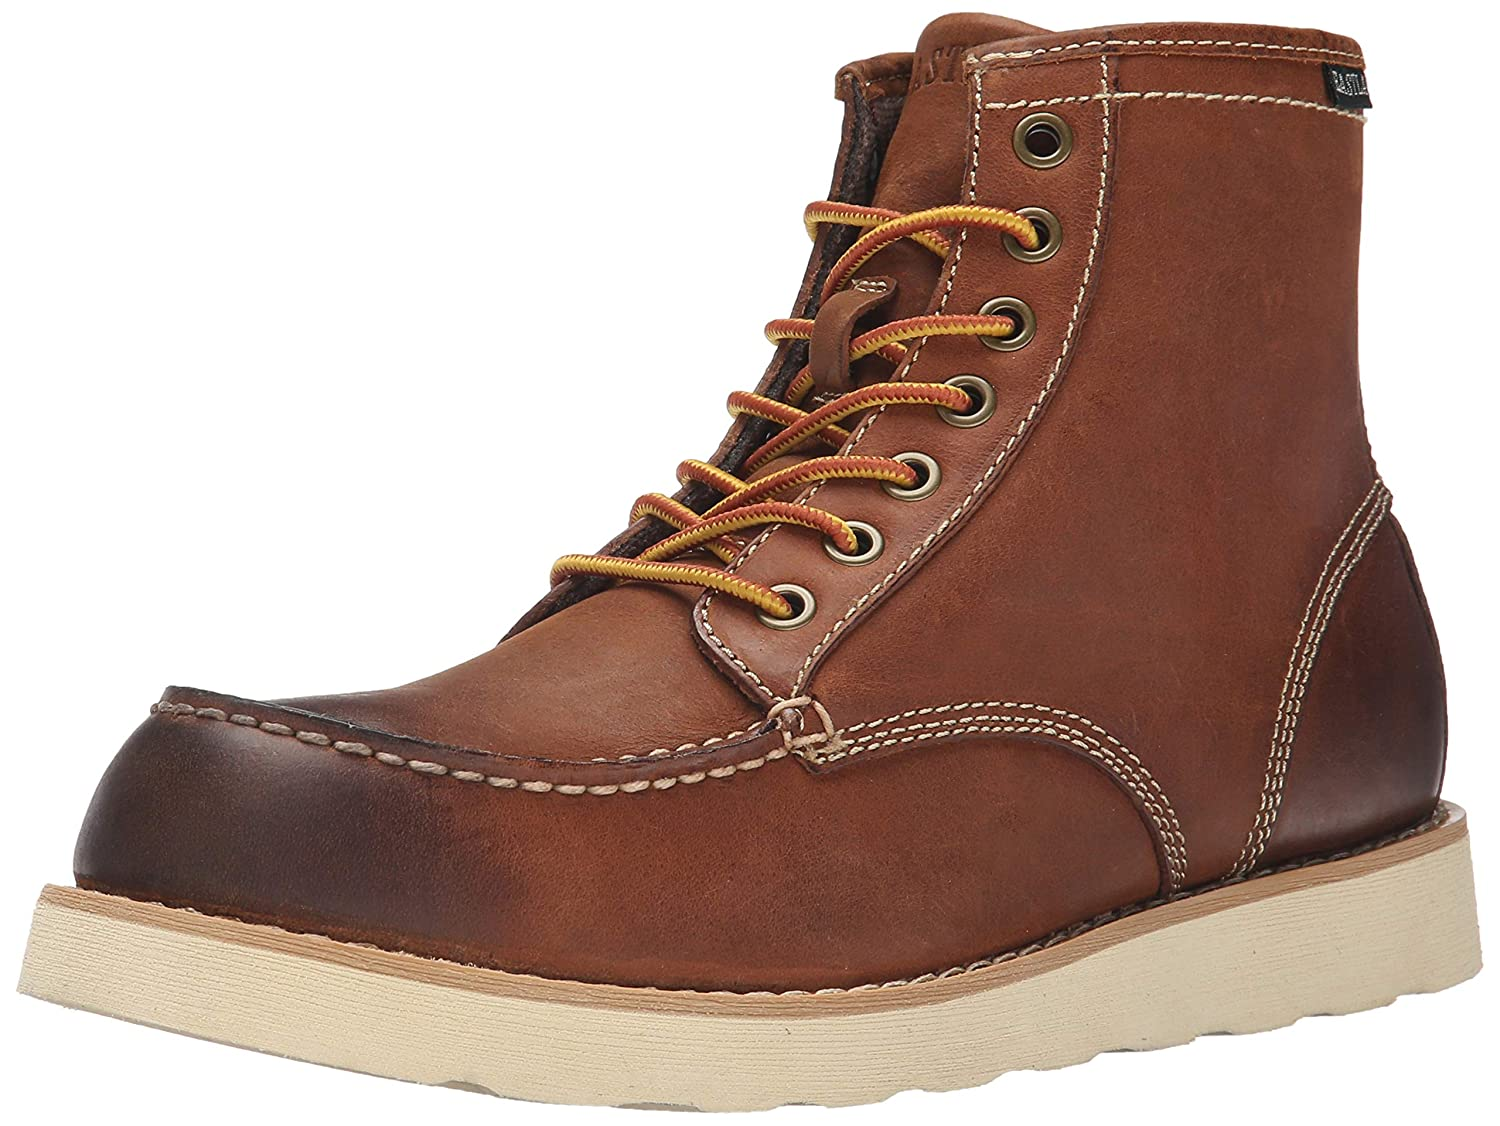 Peanut Eastland Men's Lumber Up Chukka Boot